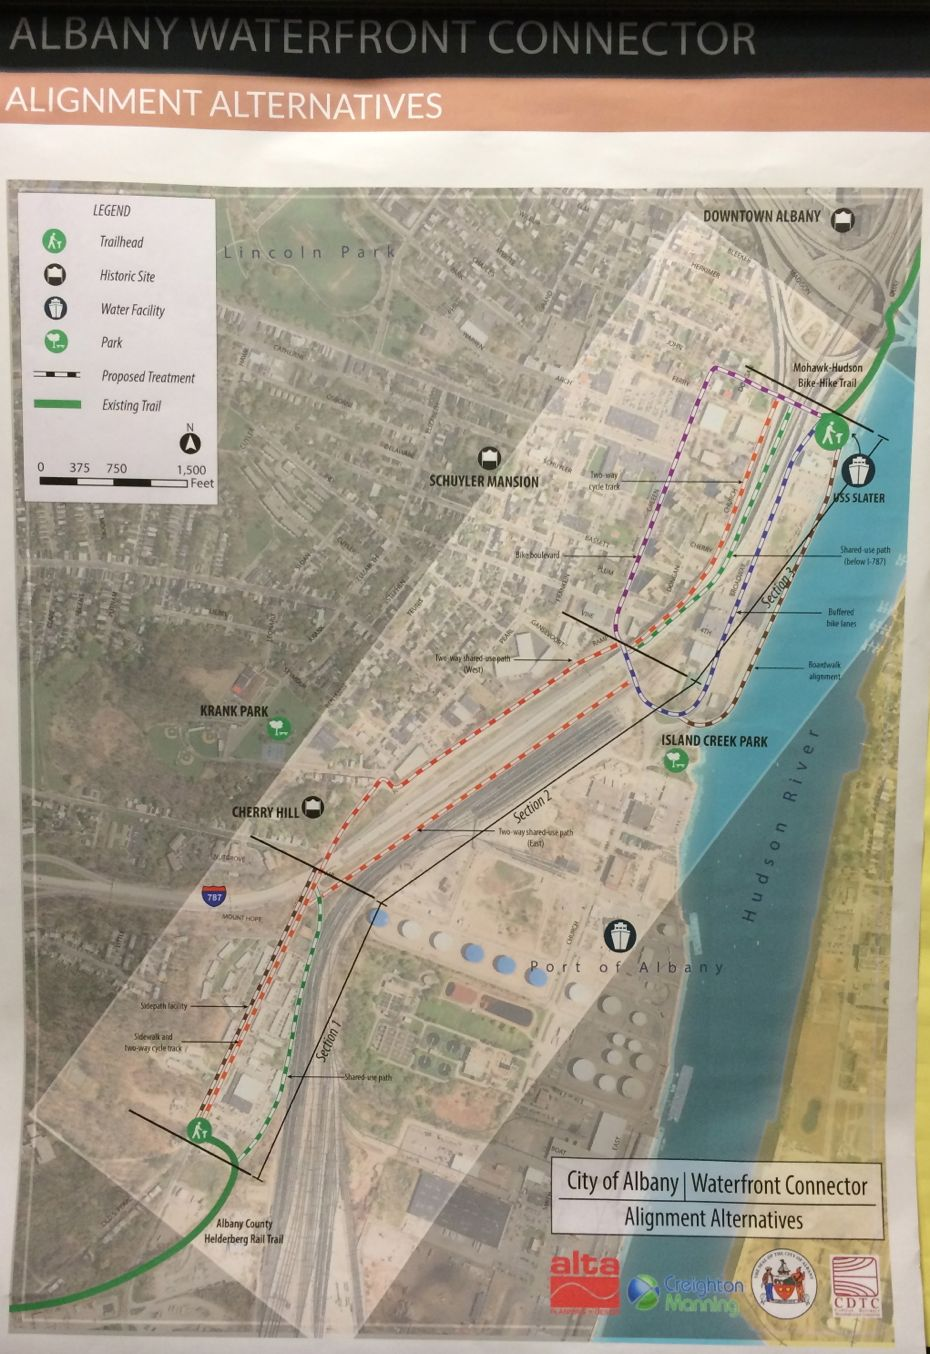 Albany_waterfront_connector_meeting_overall_map.jpg